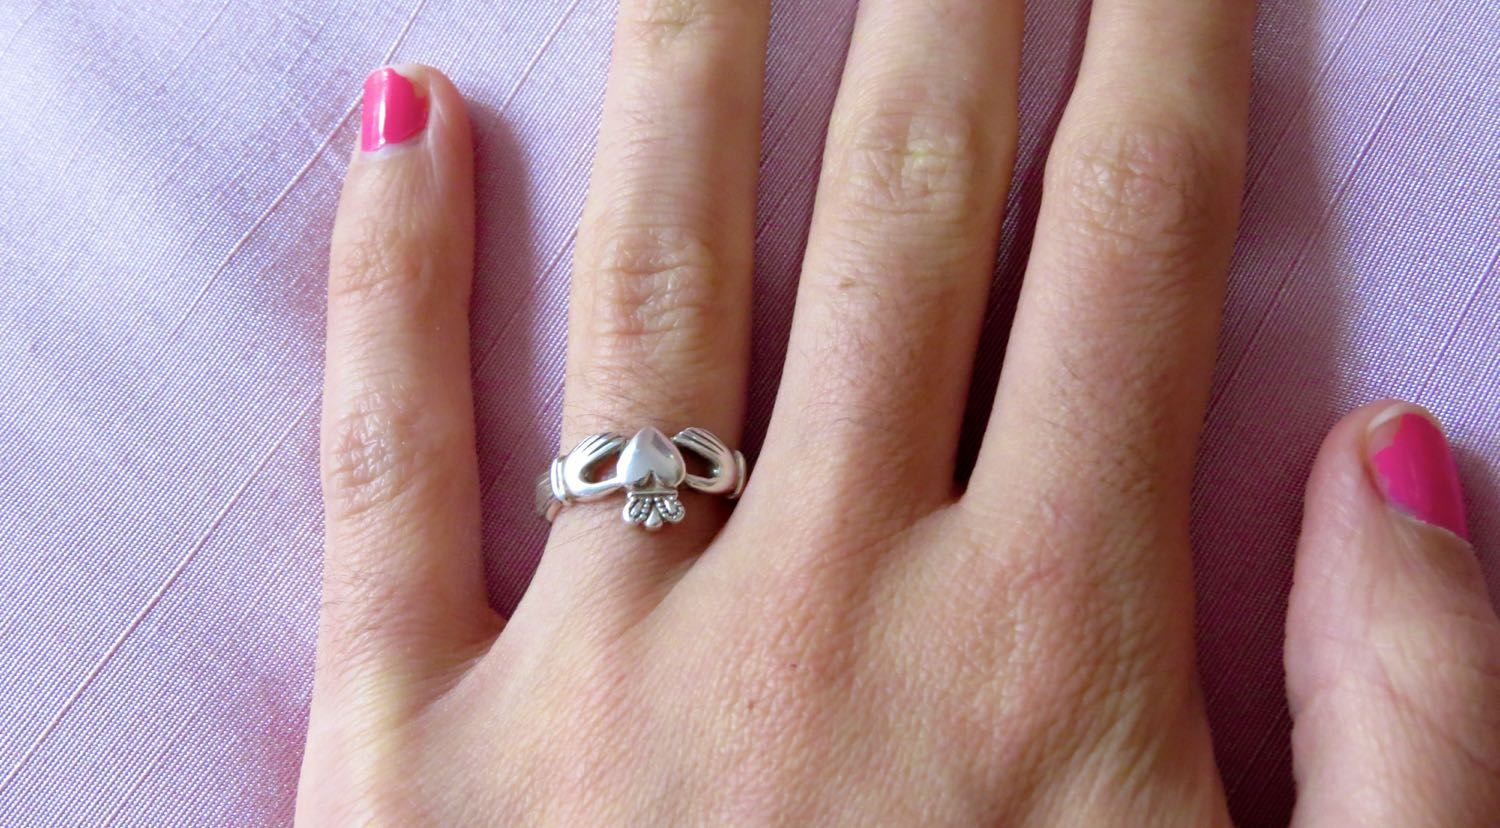 Love When a Claddagh ring is worn on the left ring finger and it